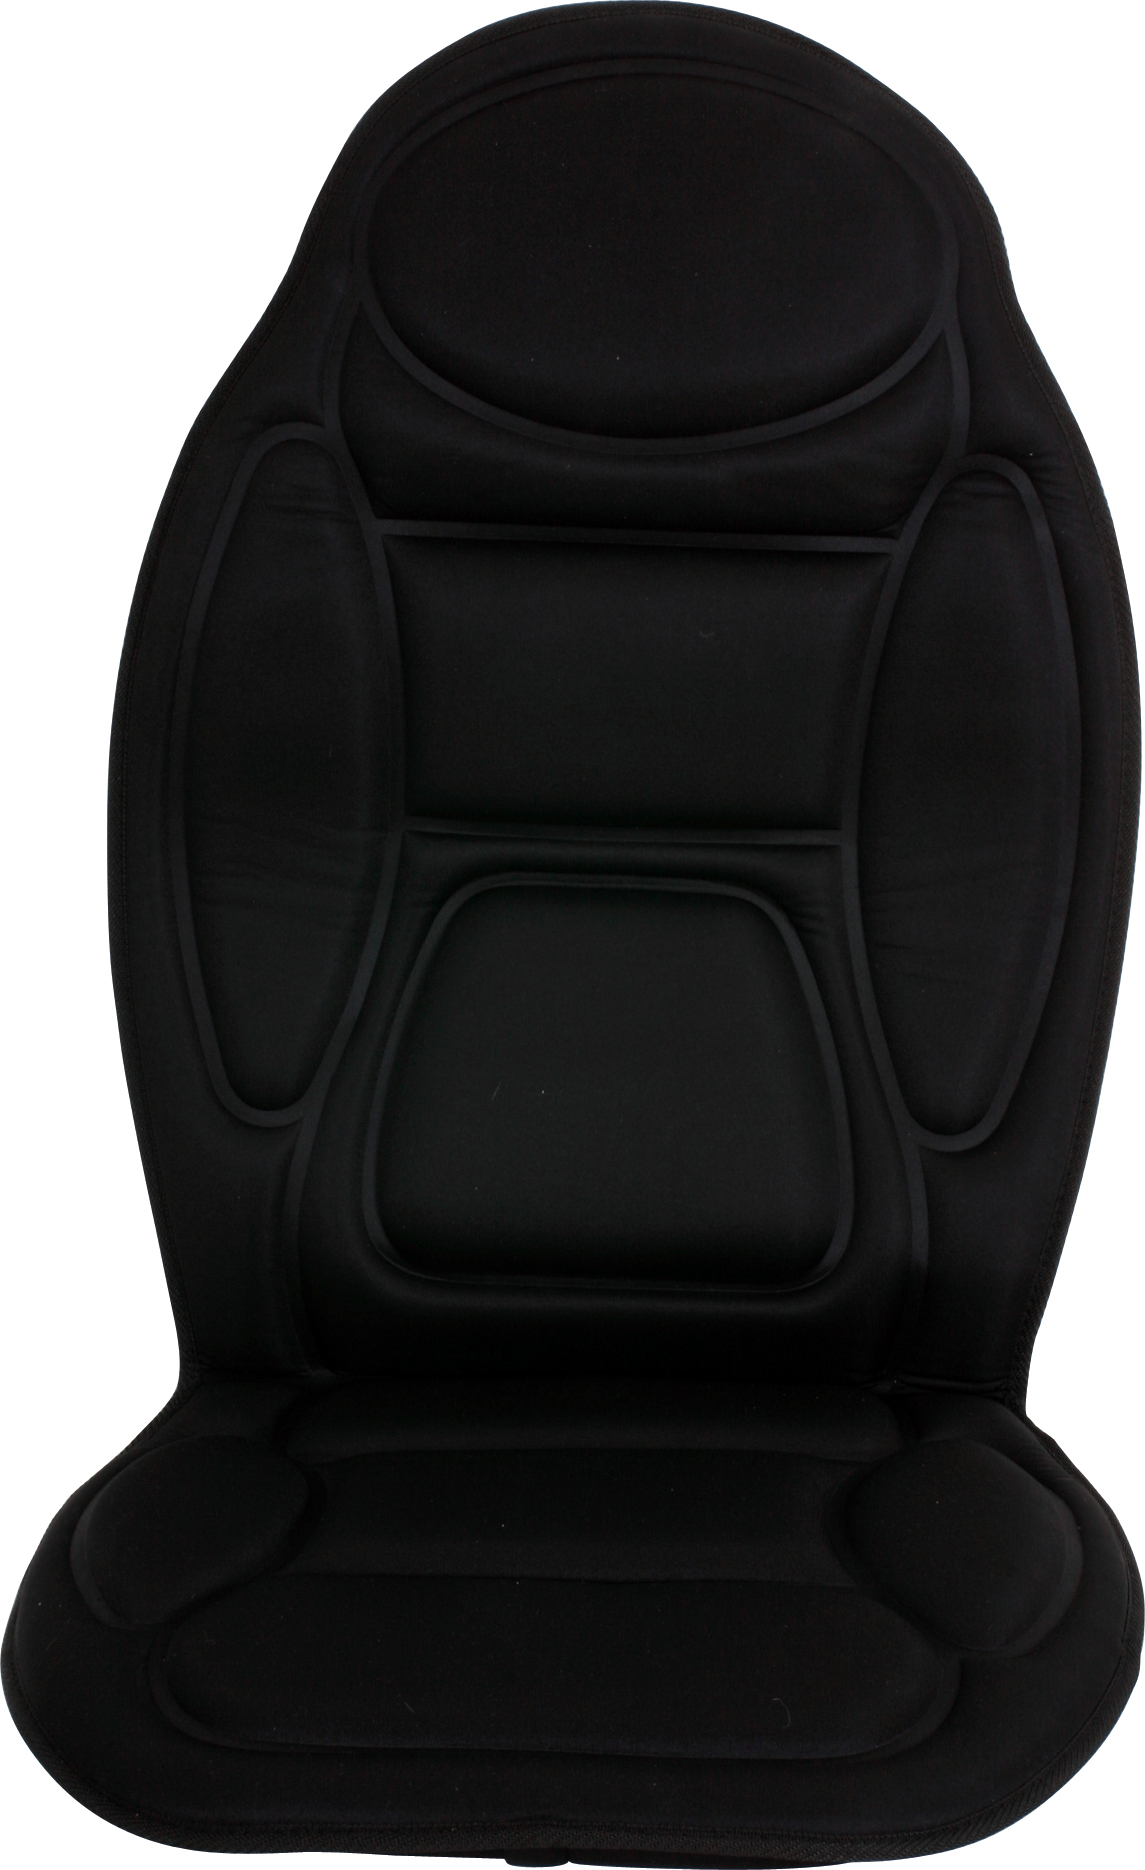 Massage Chair Cover Massaging Heated Vibrating Seat Cover Remote Car Office Ebay